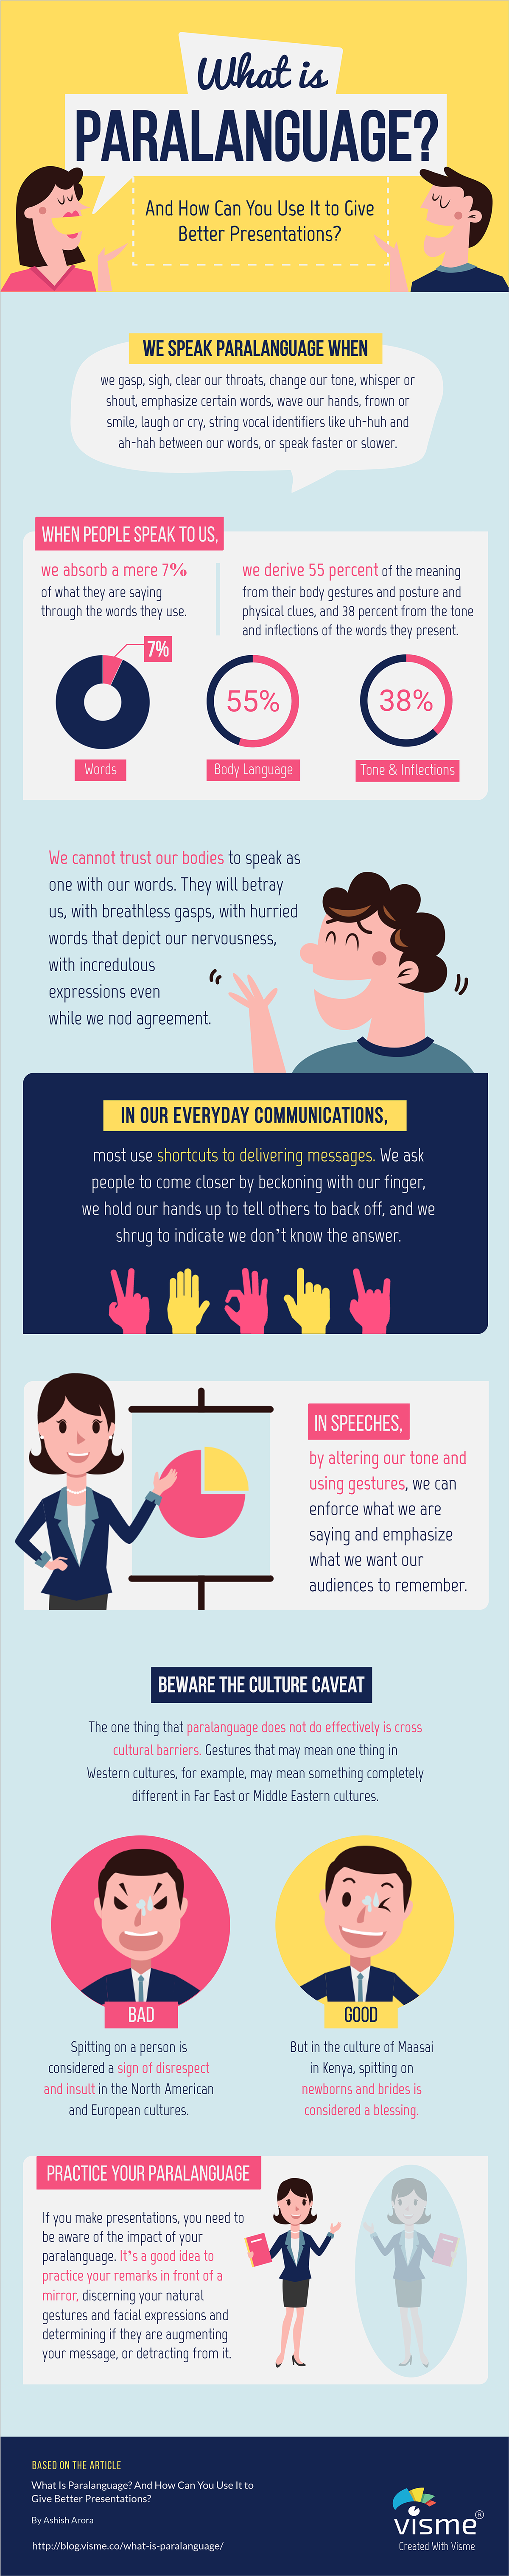 What-Is-Paralanguage-And-How-Can-You-Use-It-to-Give-Better-Presentations-infographic-2 (1).png